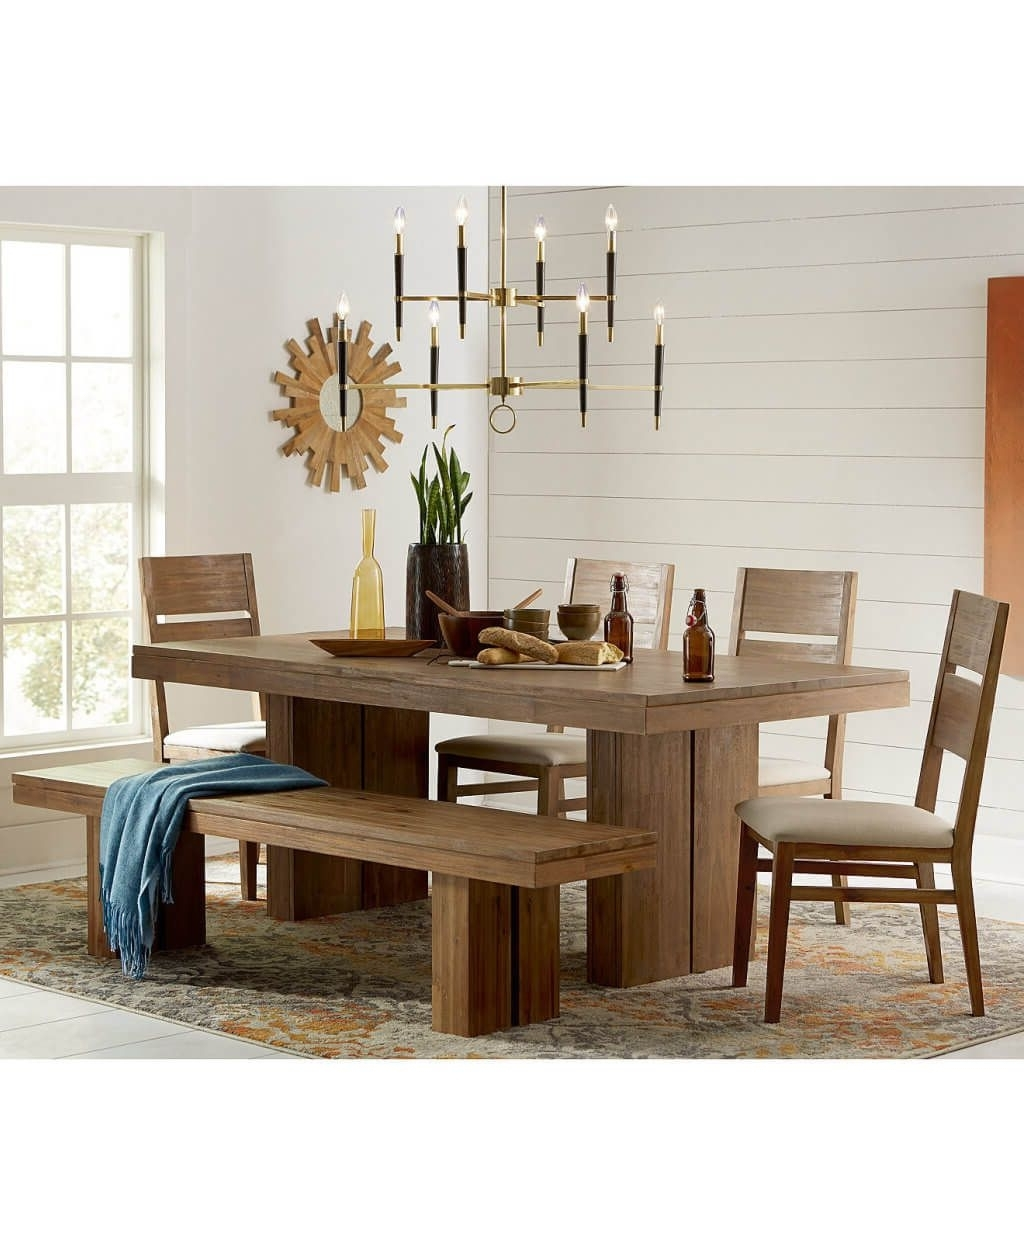 Macie Round Dining Tables Throughout Best And Newest Living Room Macys Tables Macy Bar Height Kitchen Round Dining Table (View 9 of 25)